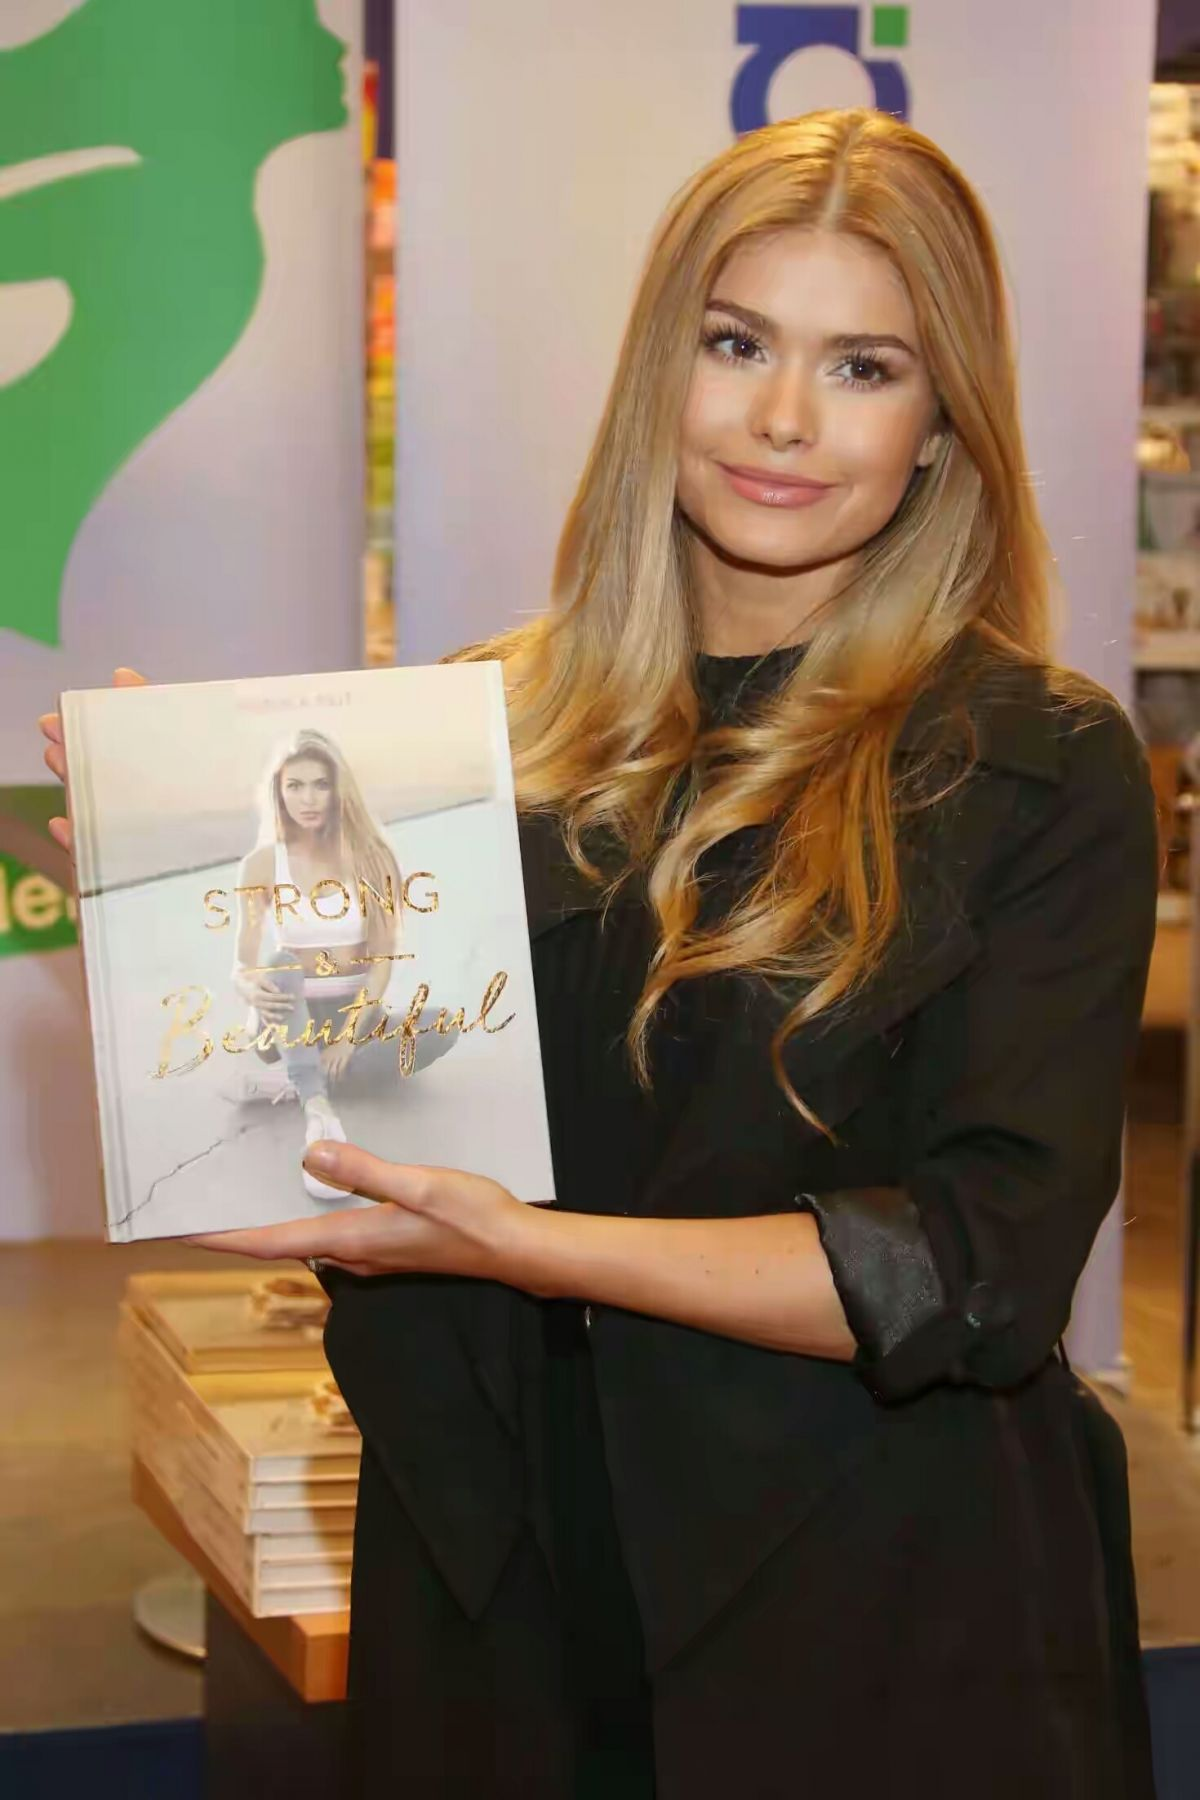 PAMELA REIF at Strong and Beautiful Book Signing in Hamburg 03/28/2017